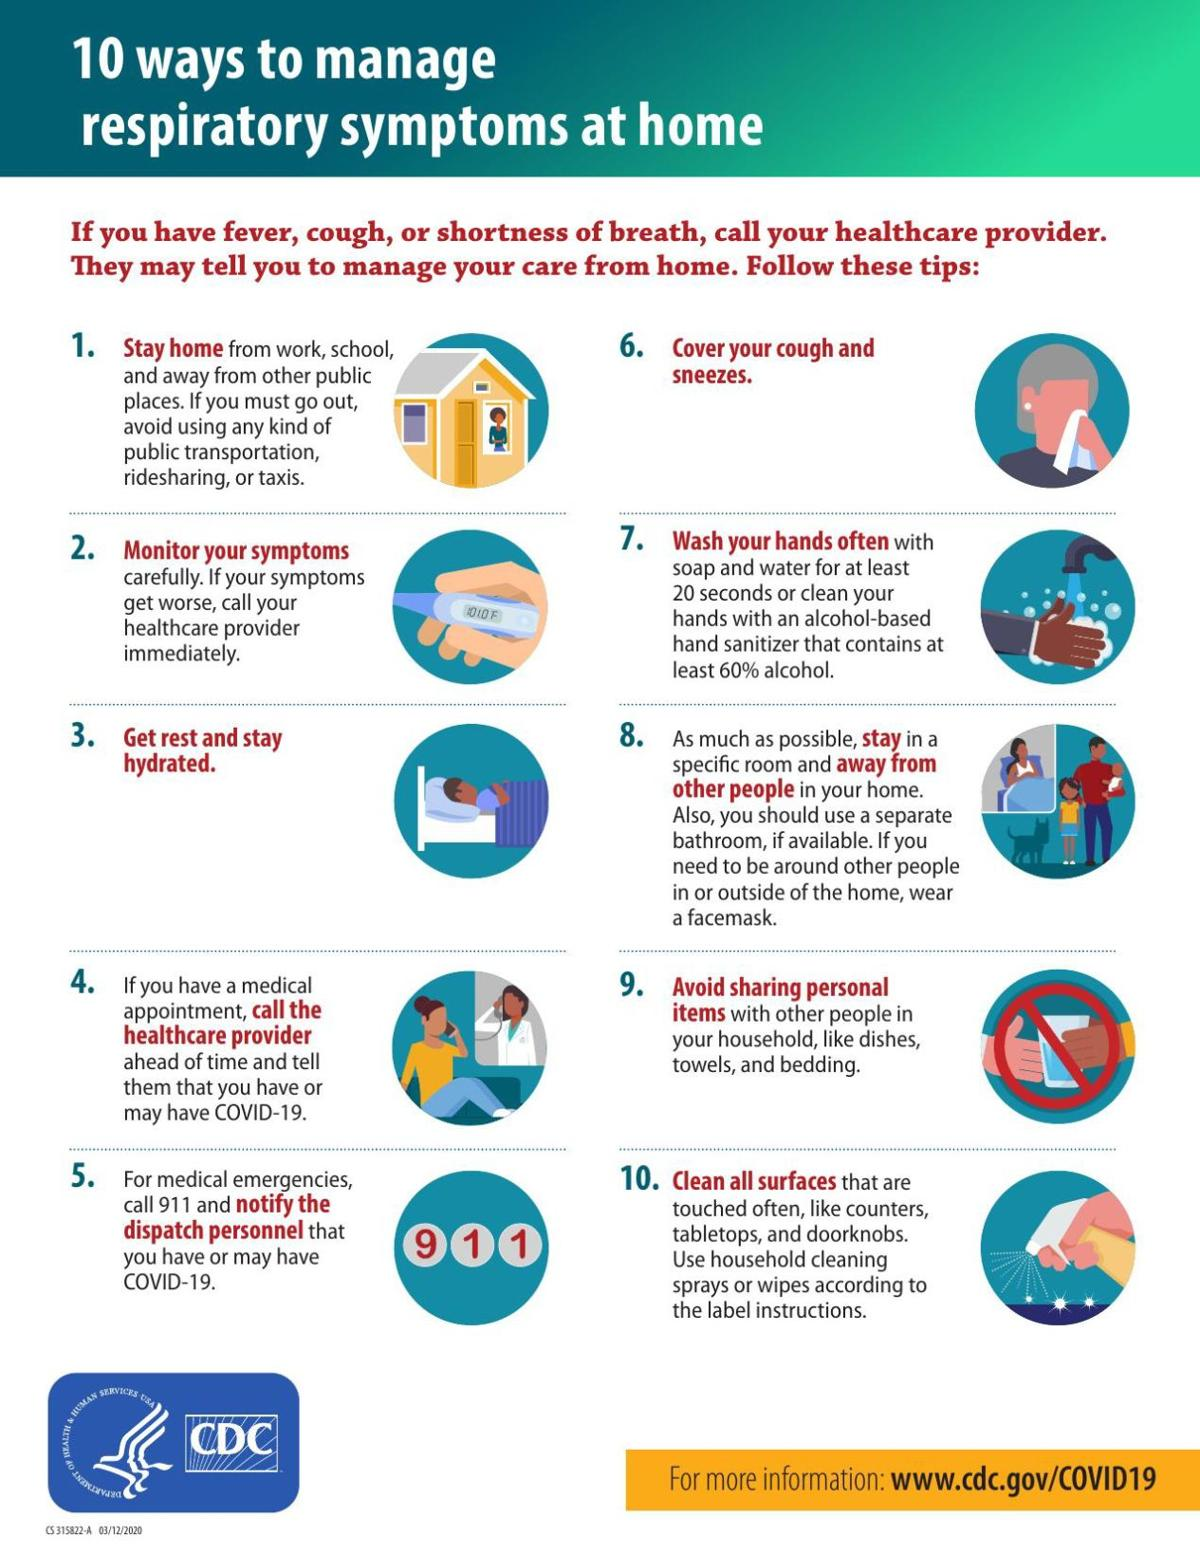 10 ways to manage your symptoms